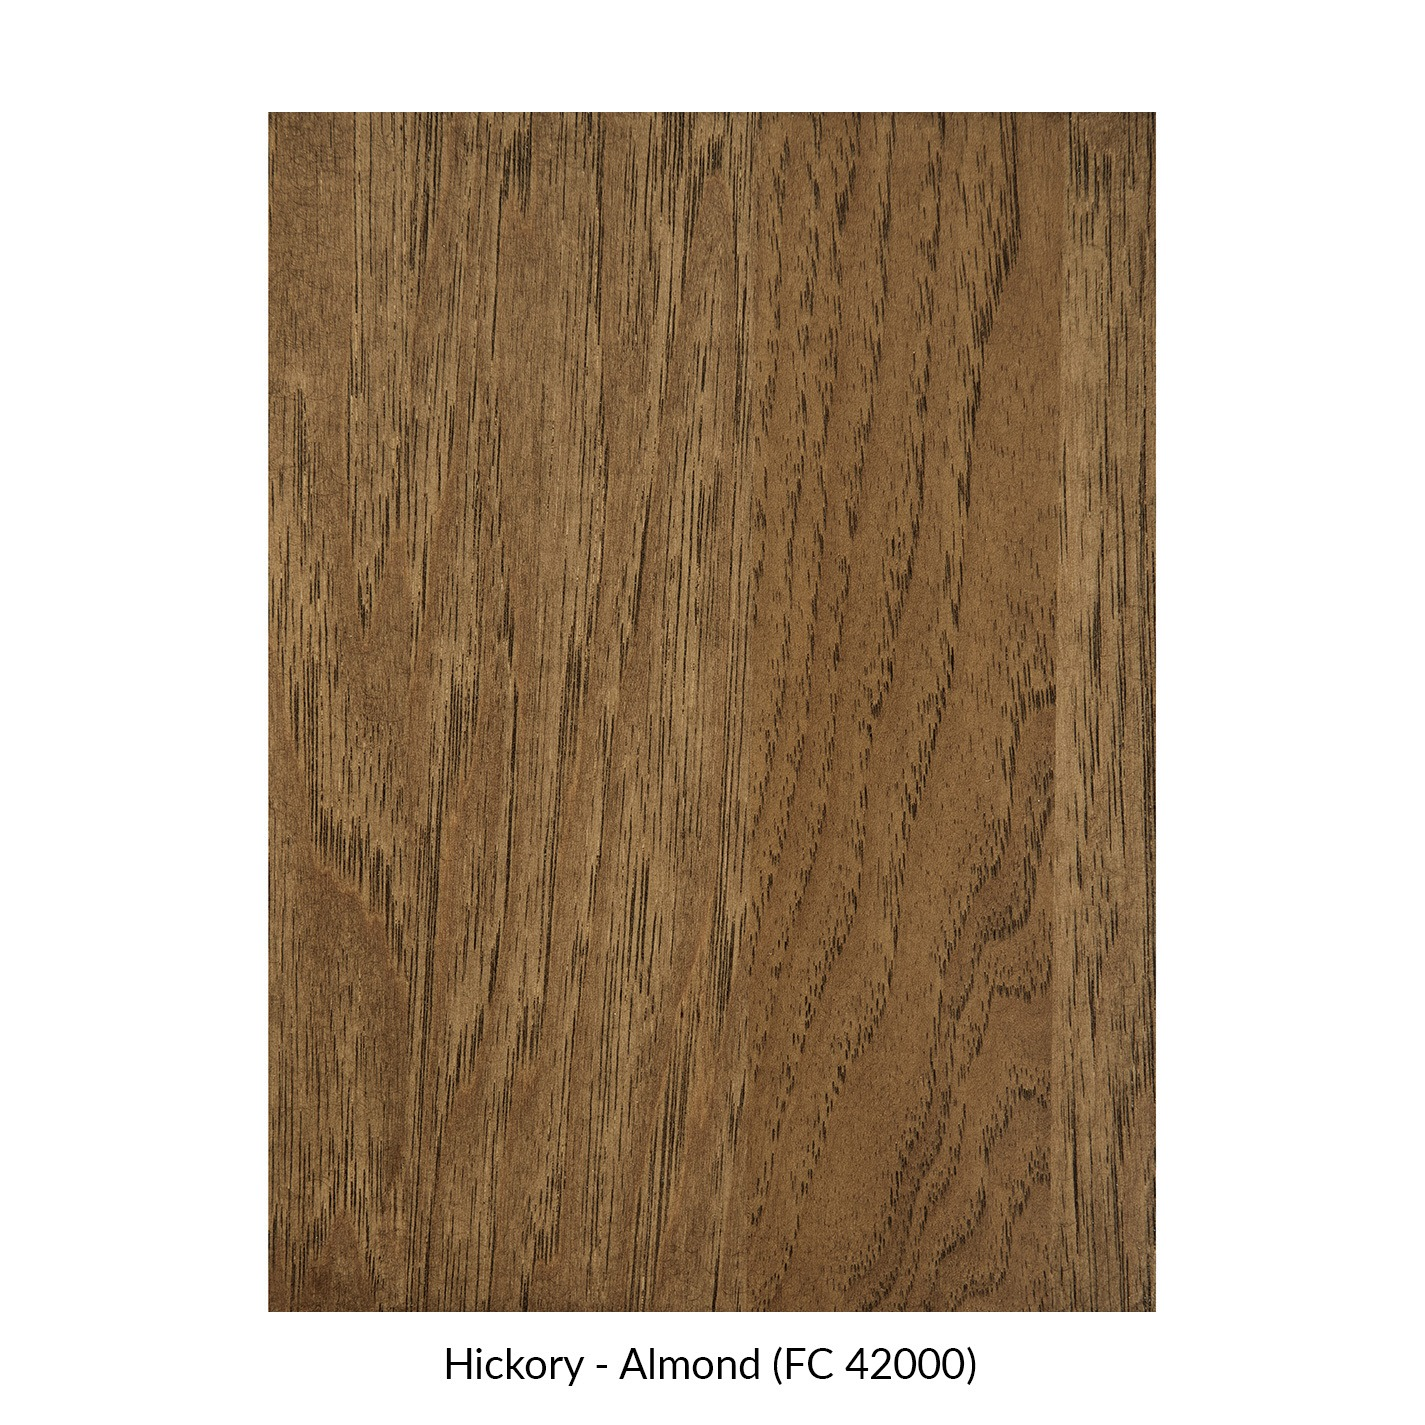 spectrum-hickory-almond-fc-42000.jpg